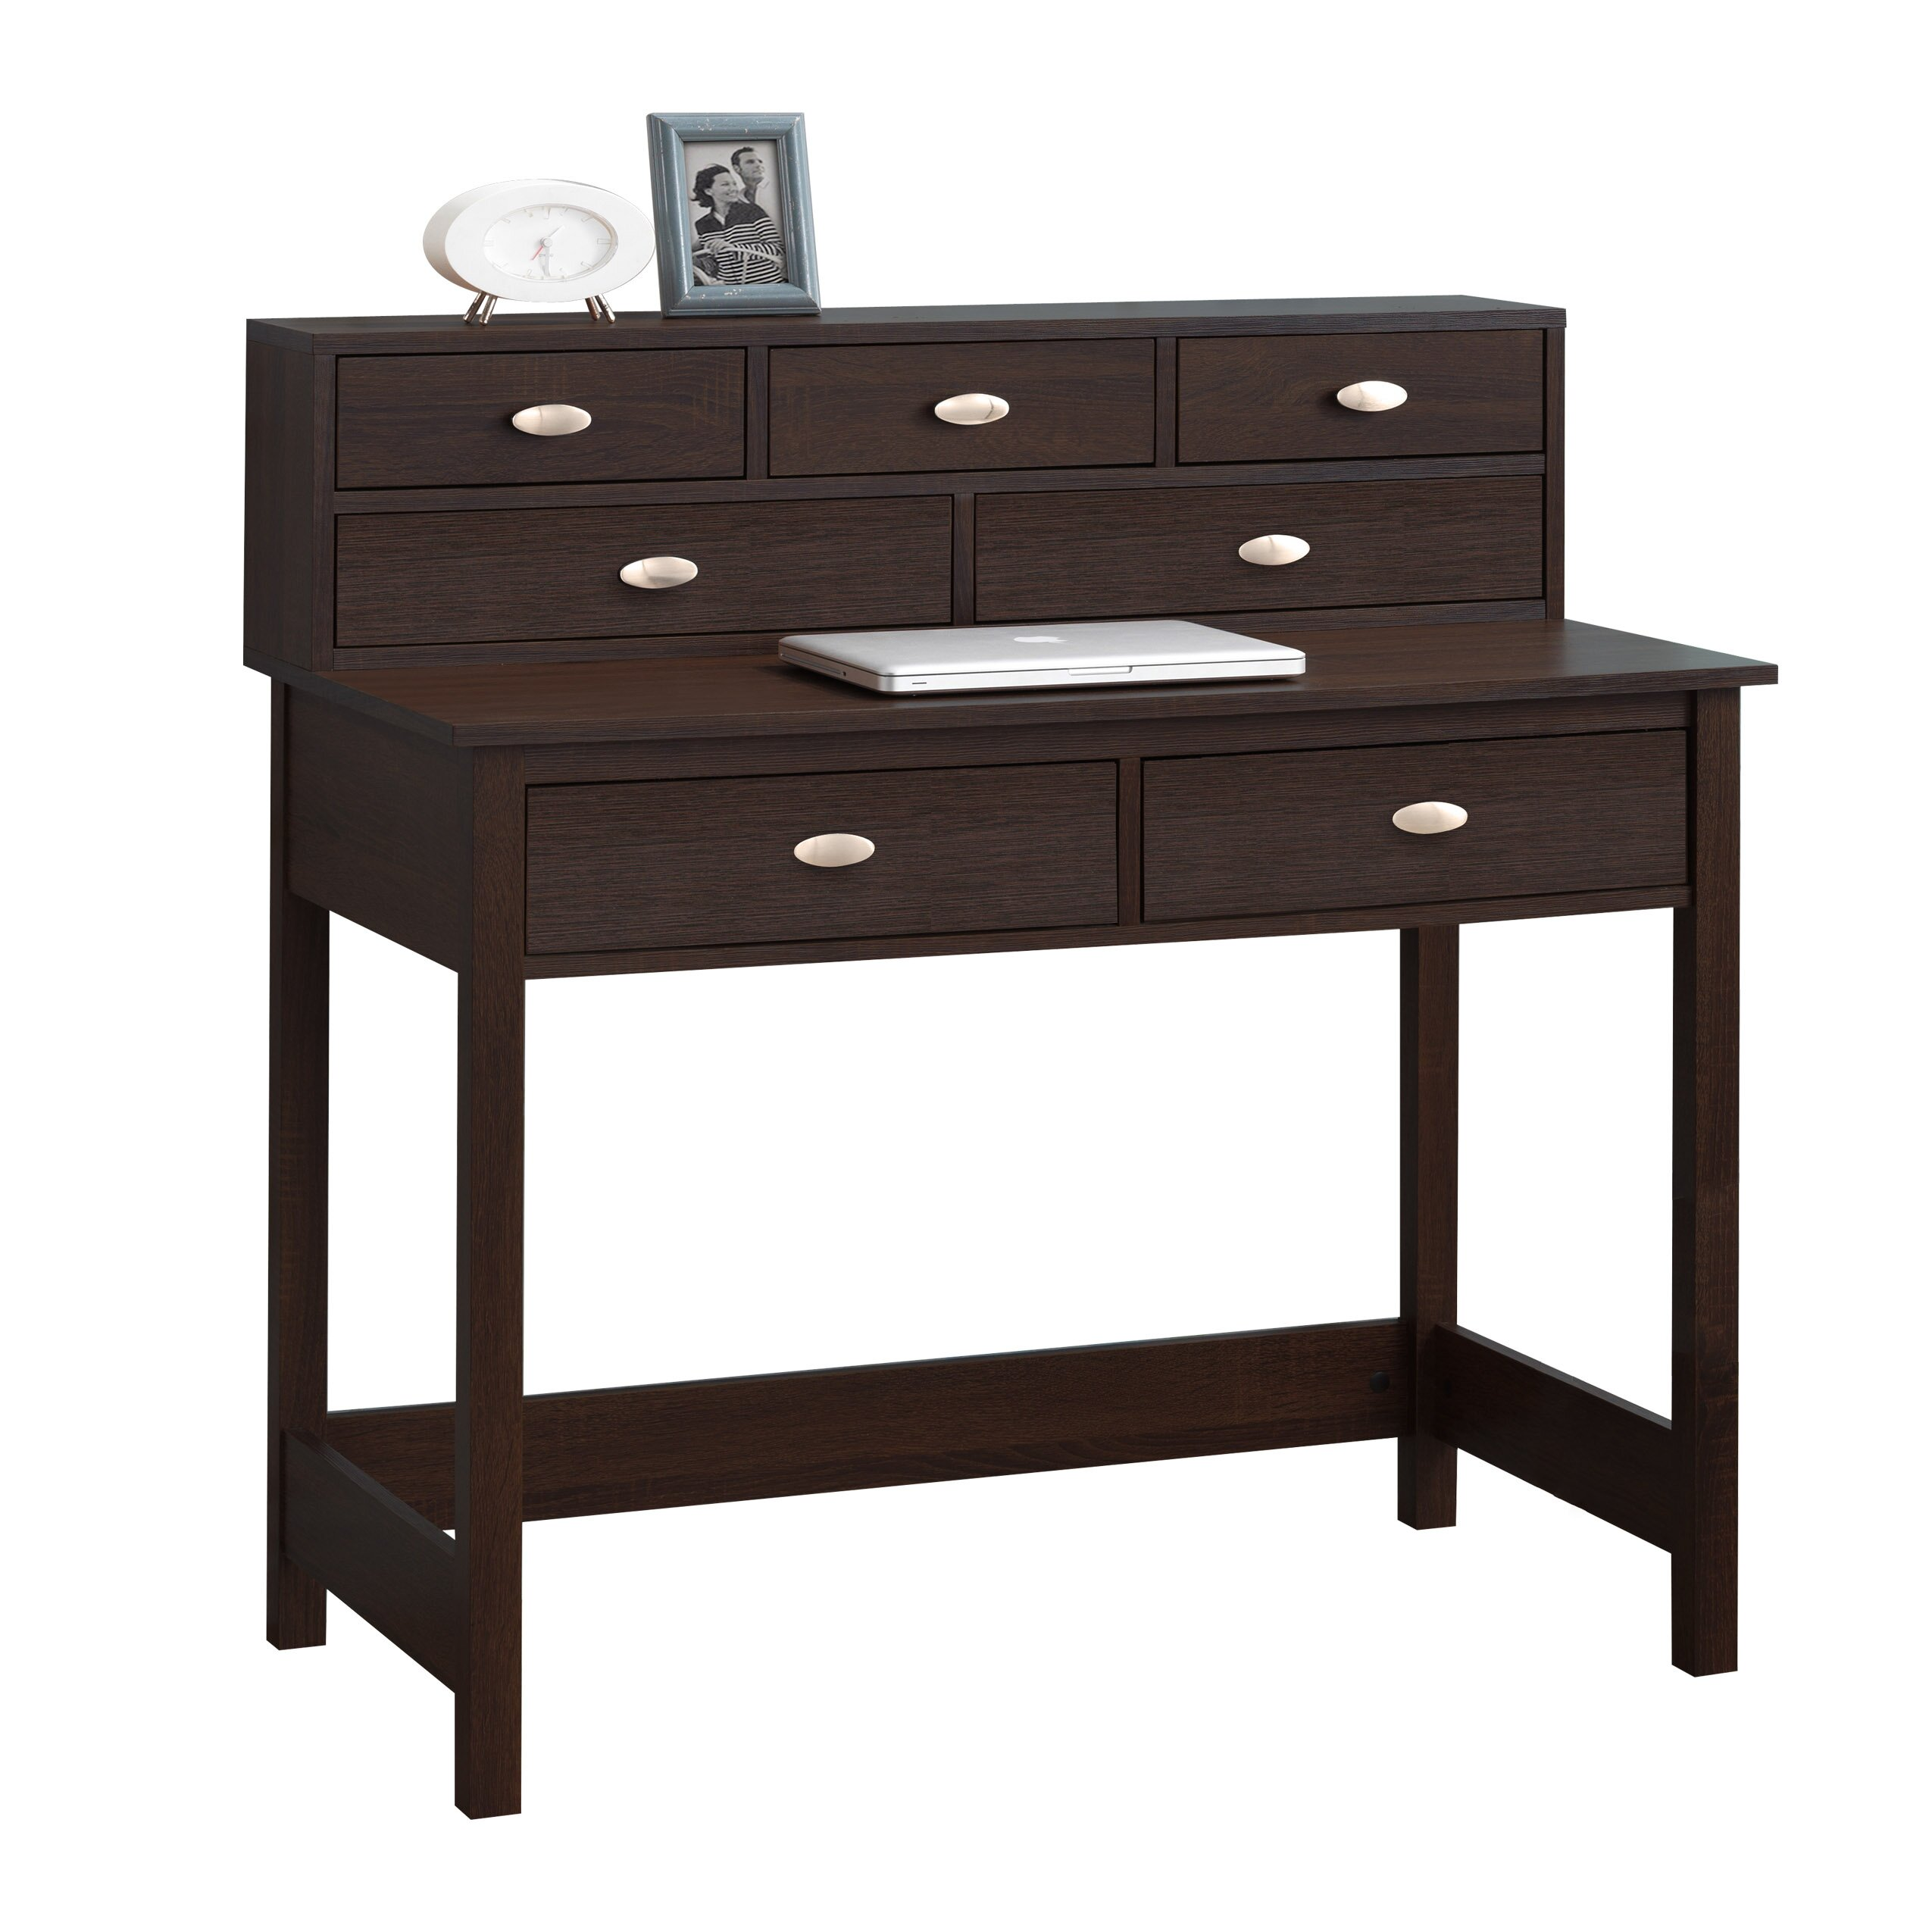 Three posts holbrook writing desk with drawers reviews